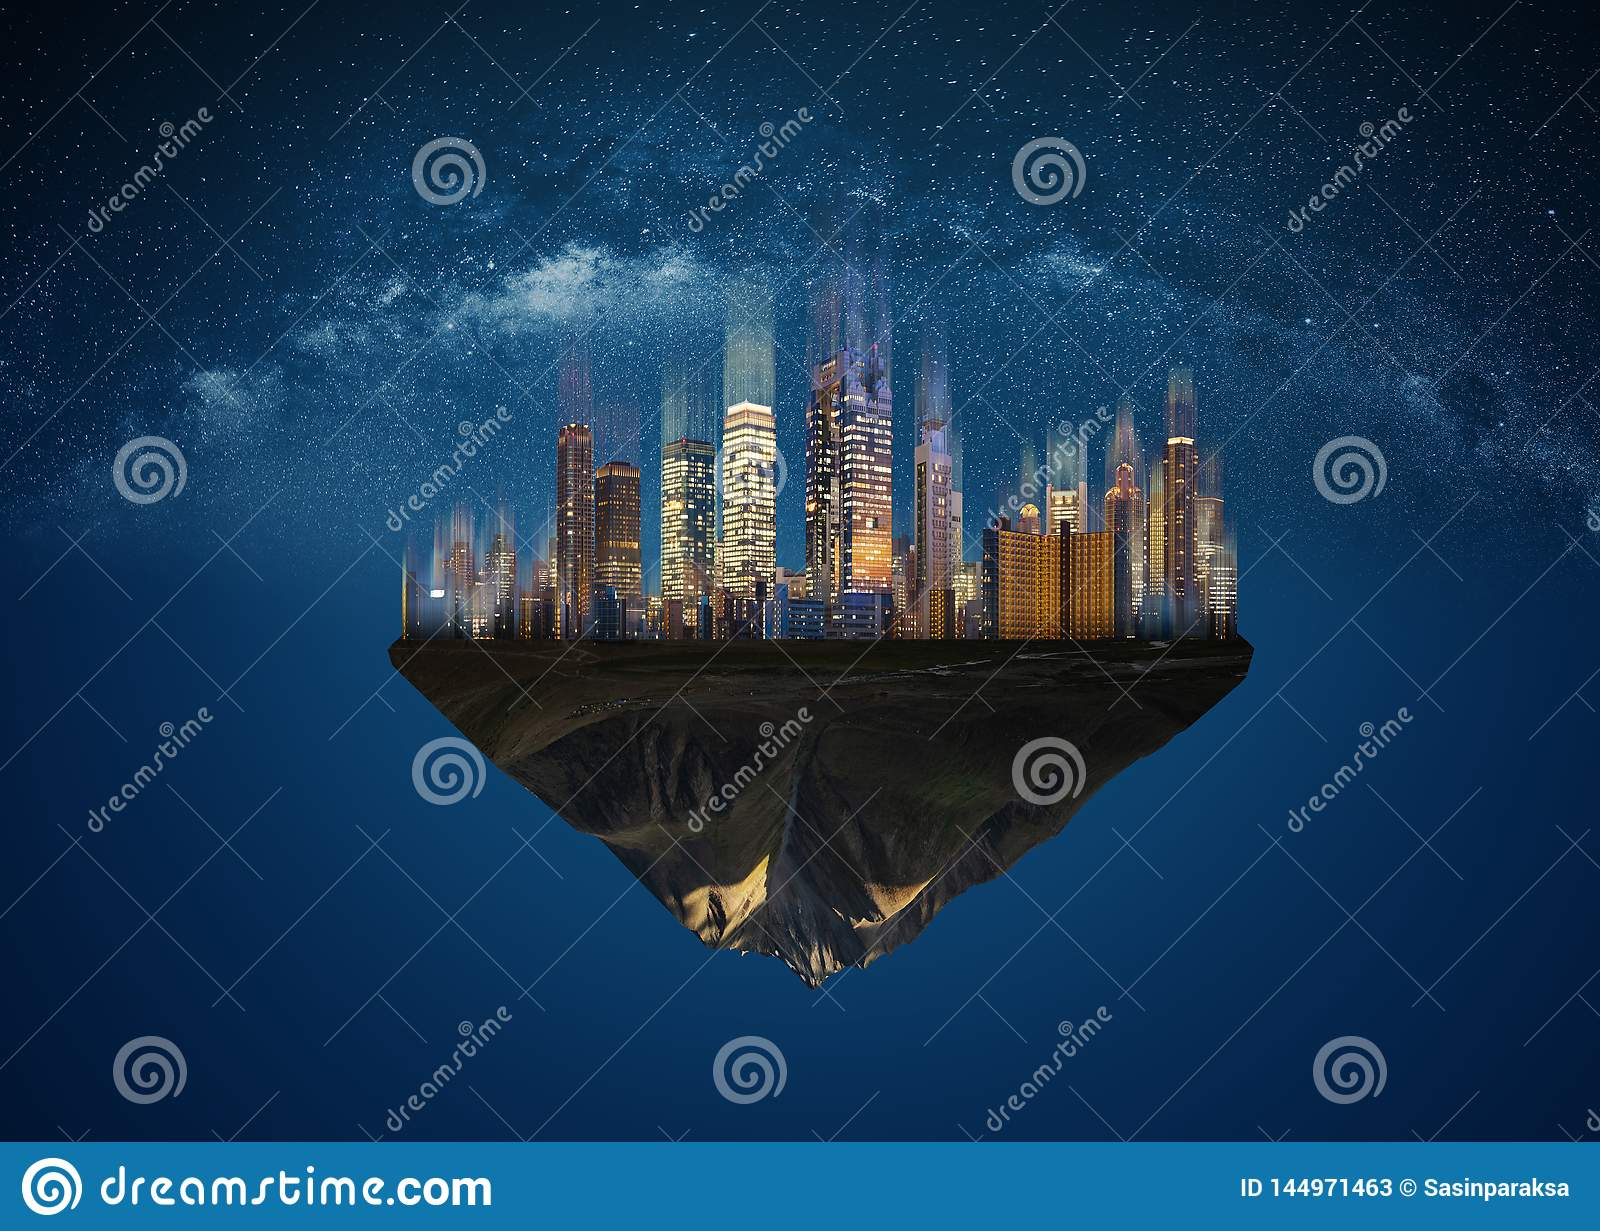 Futuristic modern buildings in the city on floating island at night